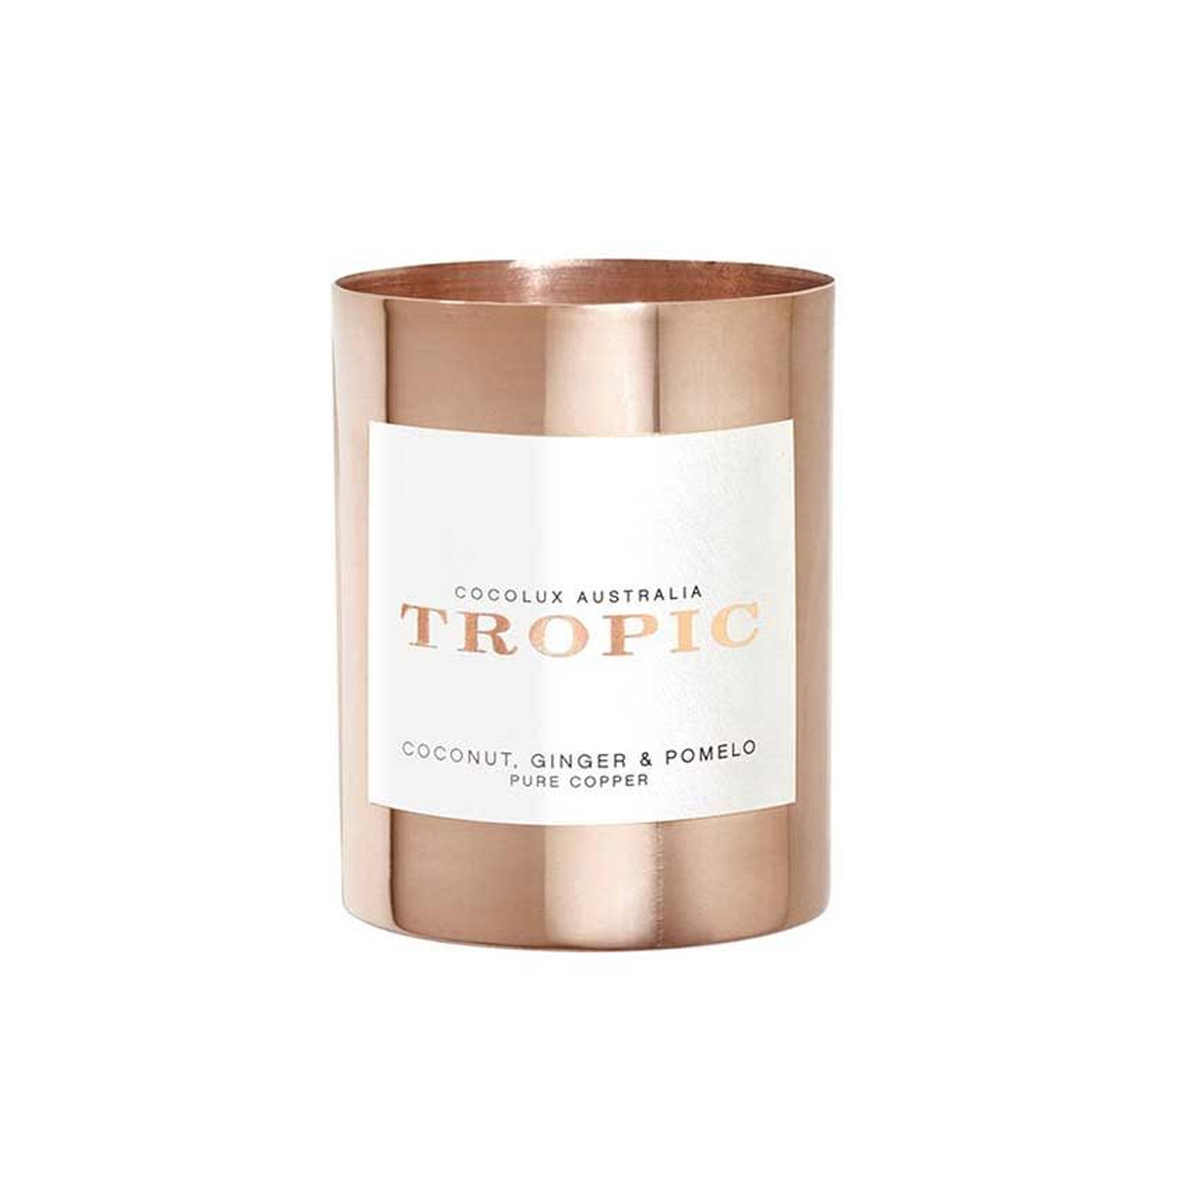 Sweet-smelling candle in a gorgeous copper holder. photo